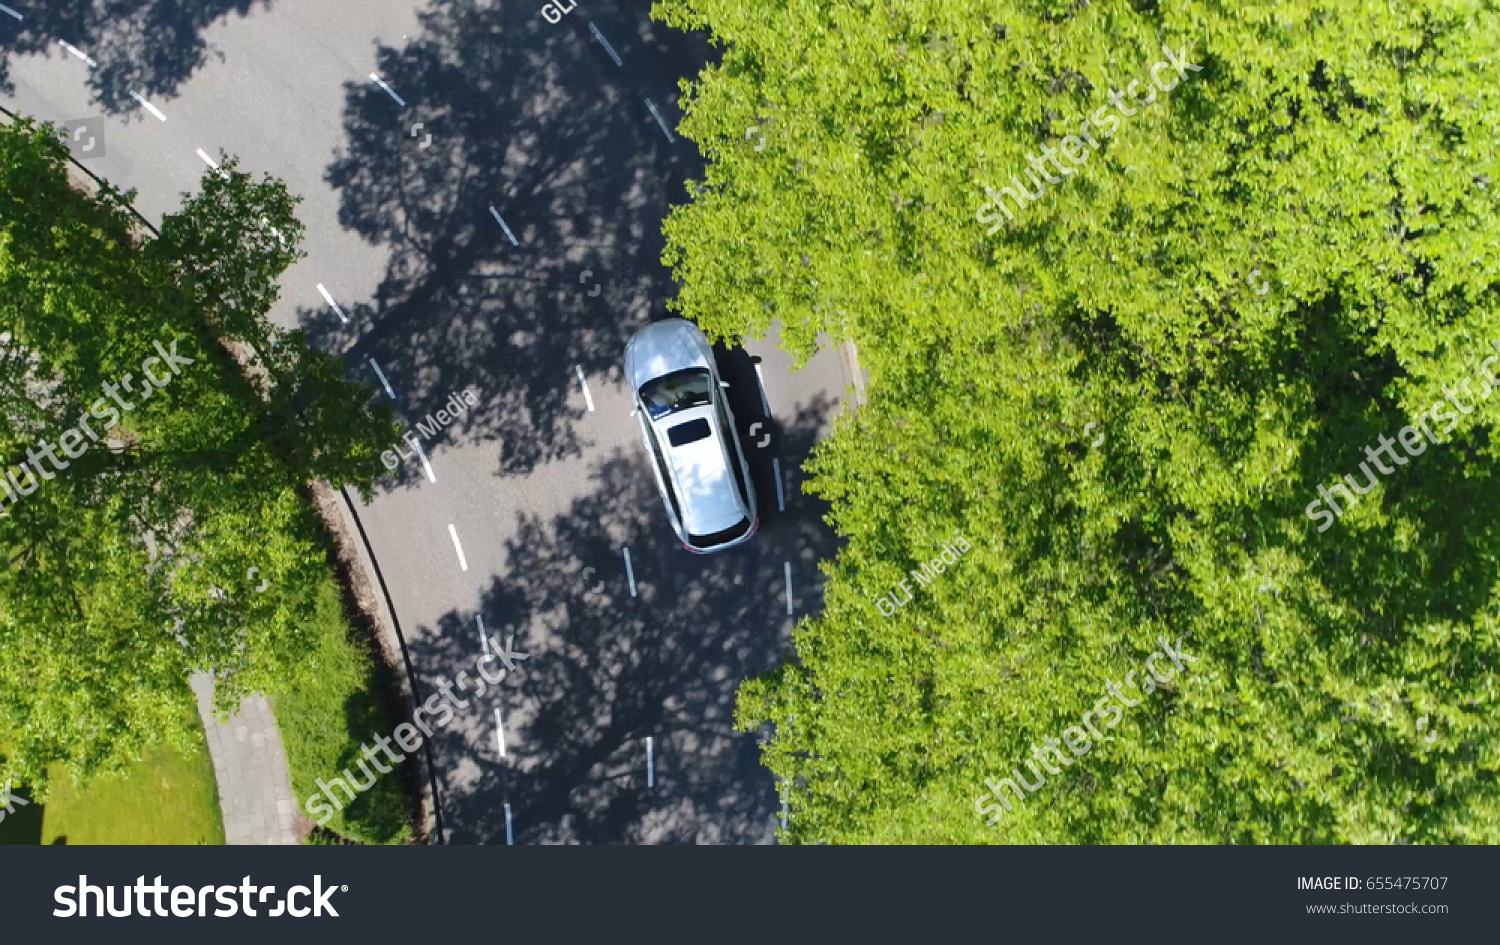 Aerial following car top-down view this grey colored station wagon is driving over two way street corner green trees on both sides of street #655475707